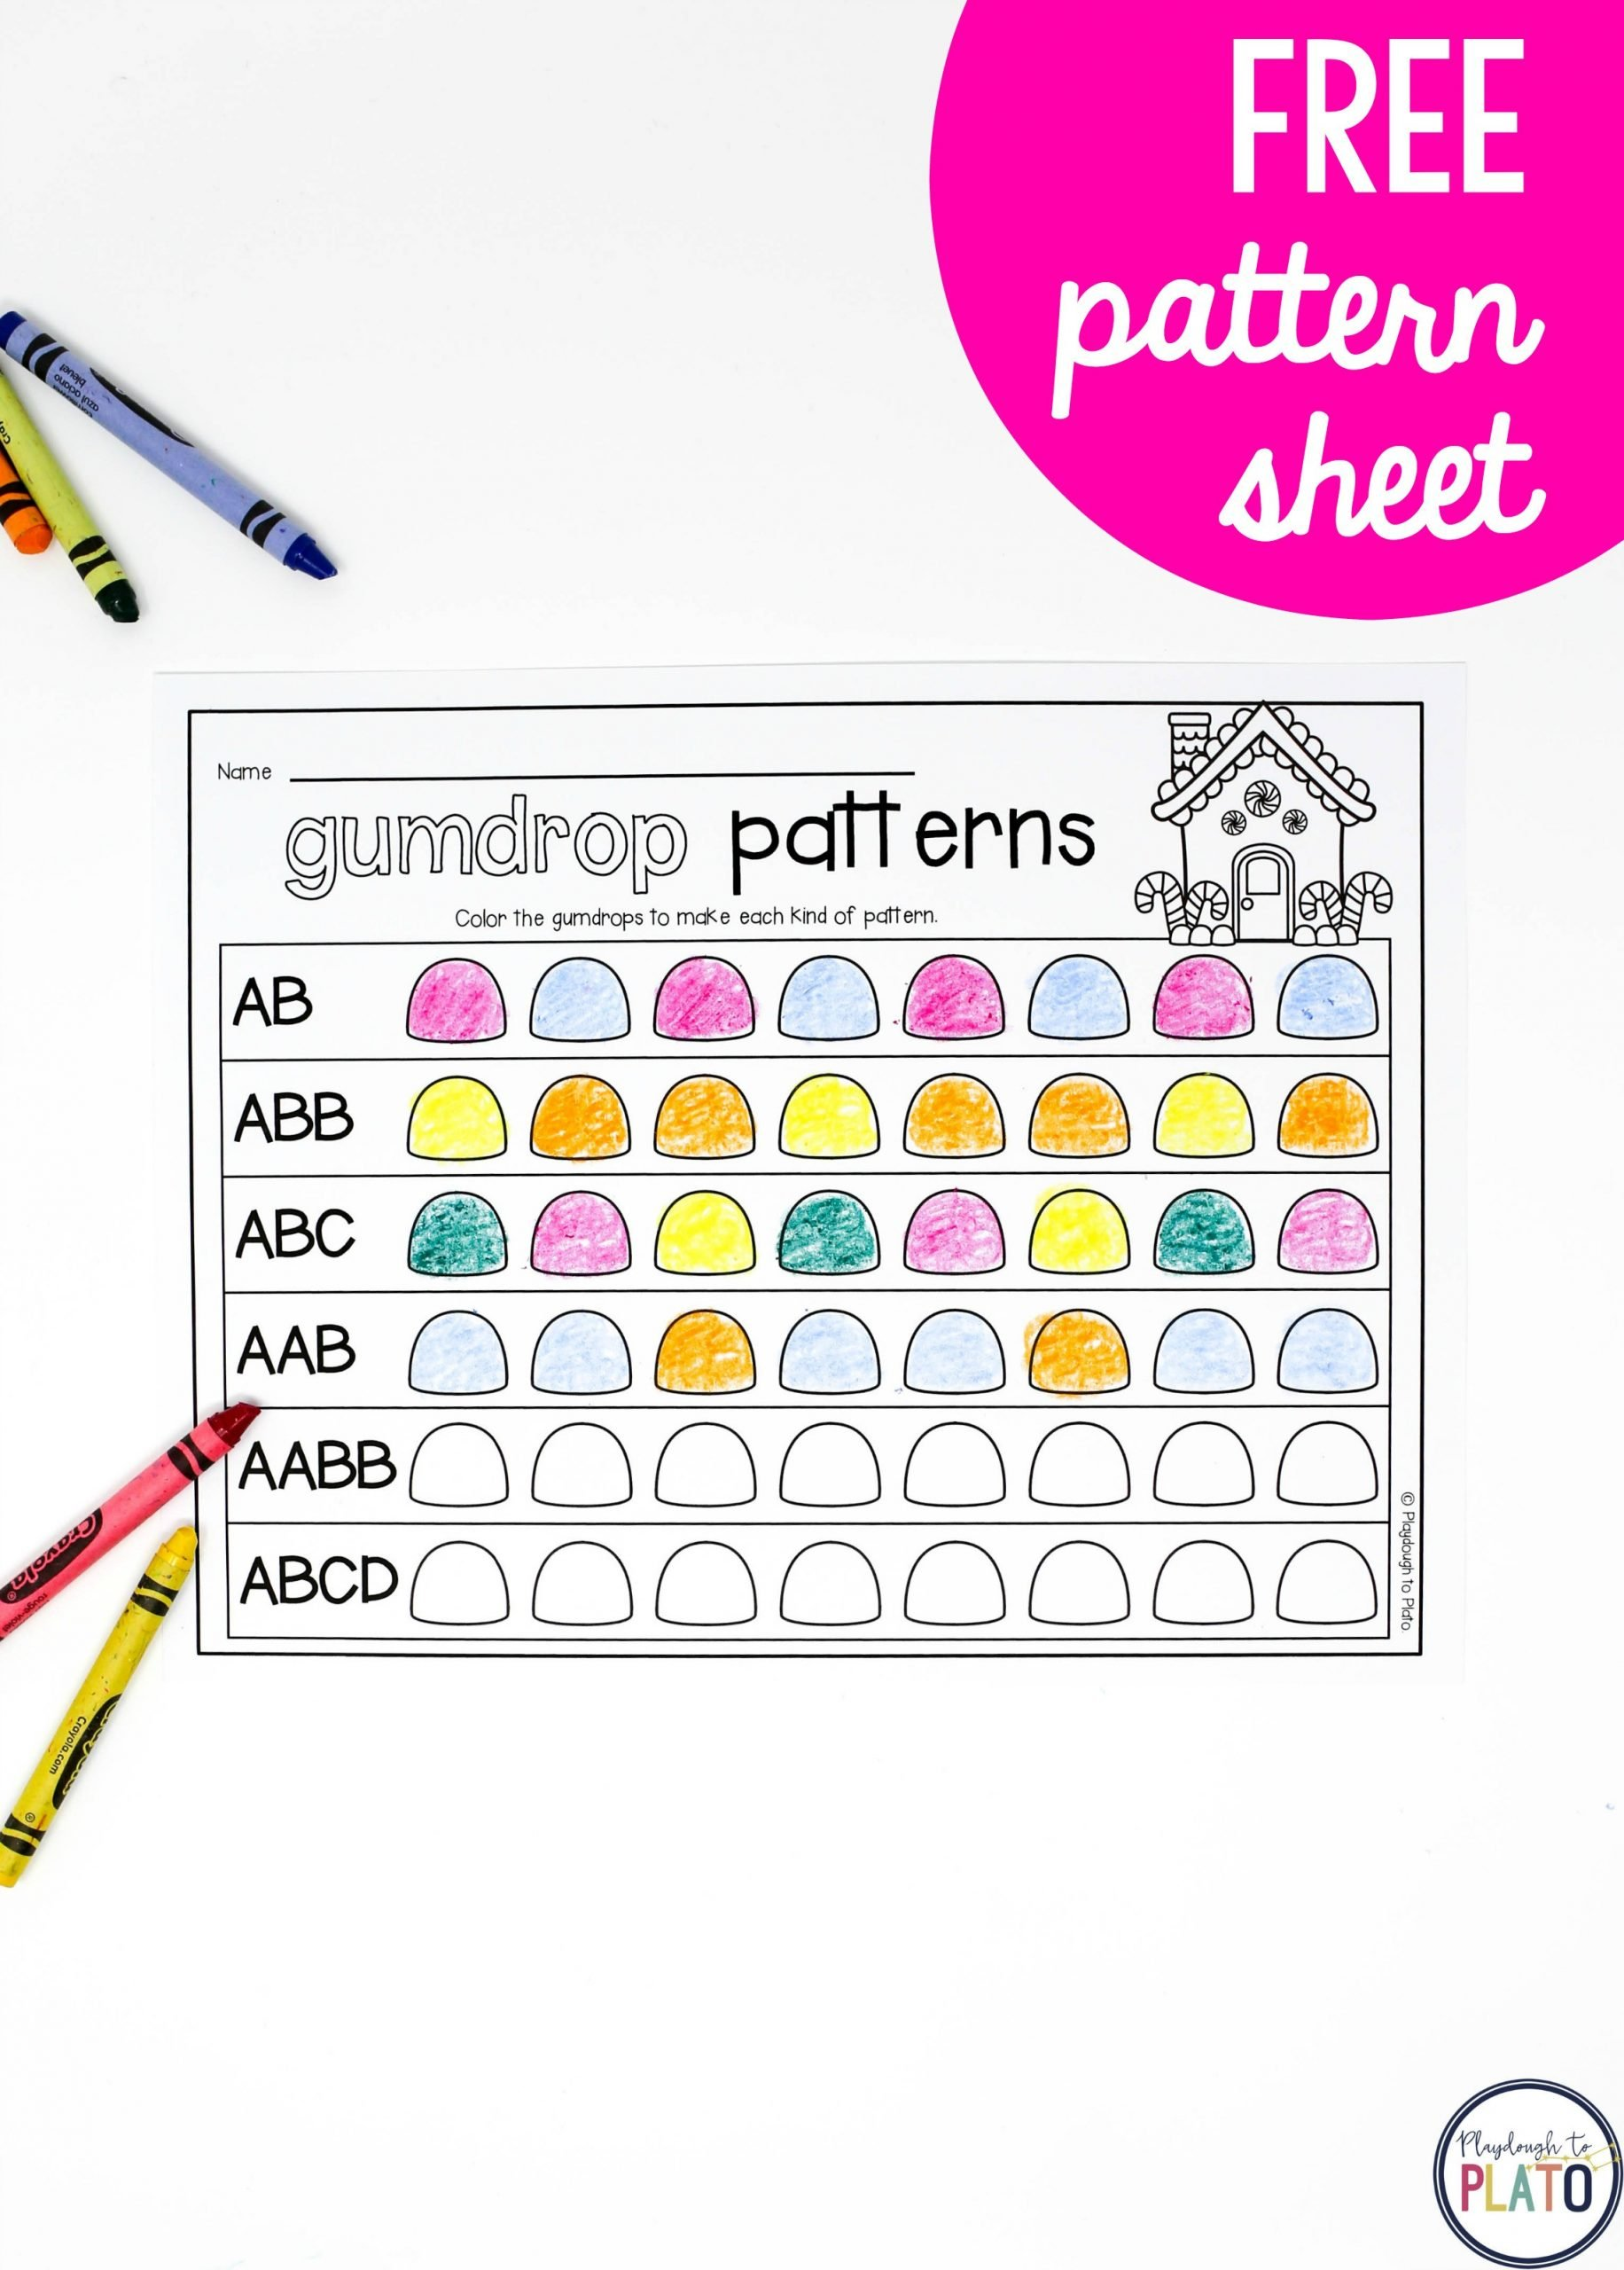 Kindergarten Ab Pattern Worksheets Gumdrop Patterns Playdough to Plato